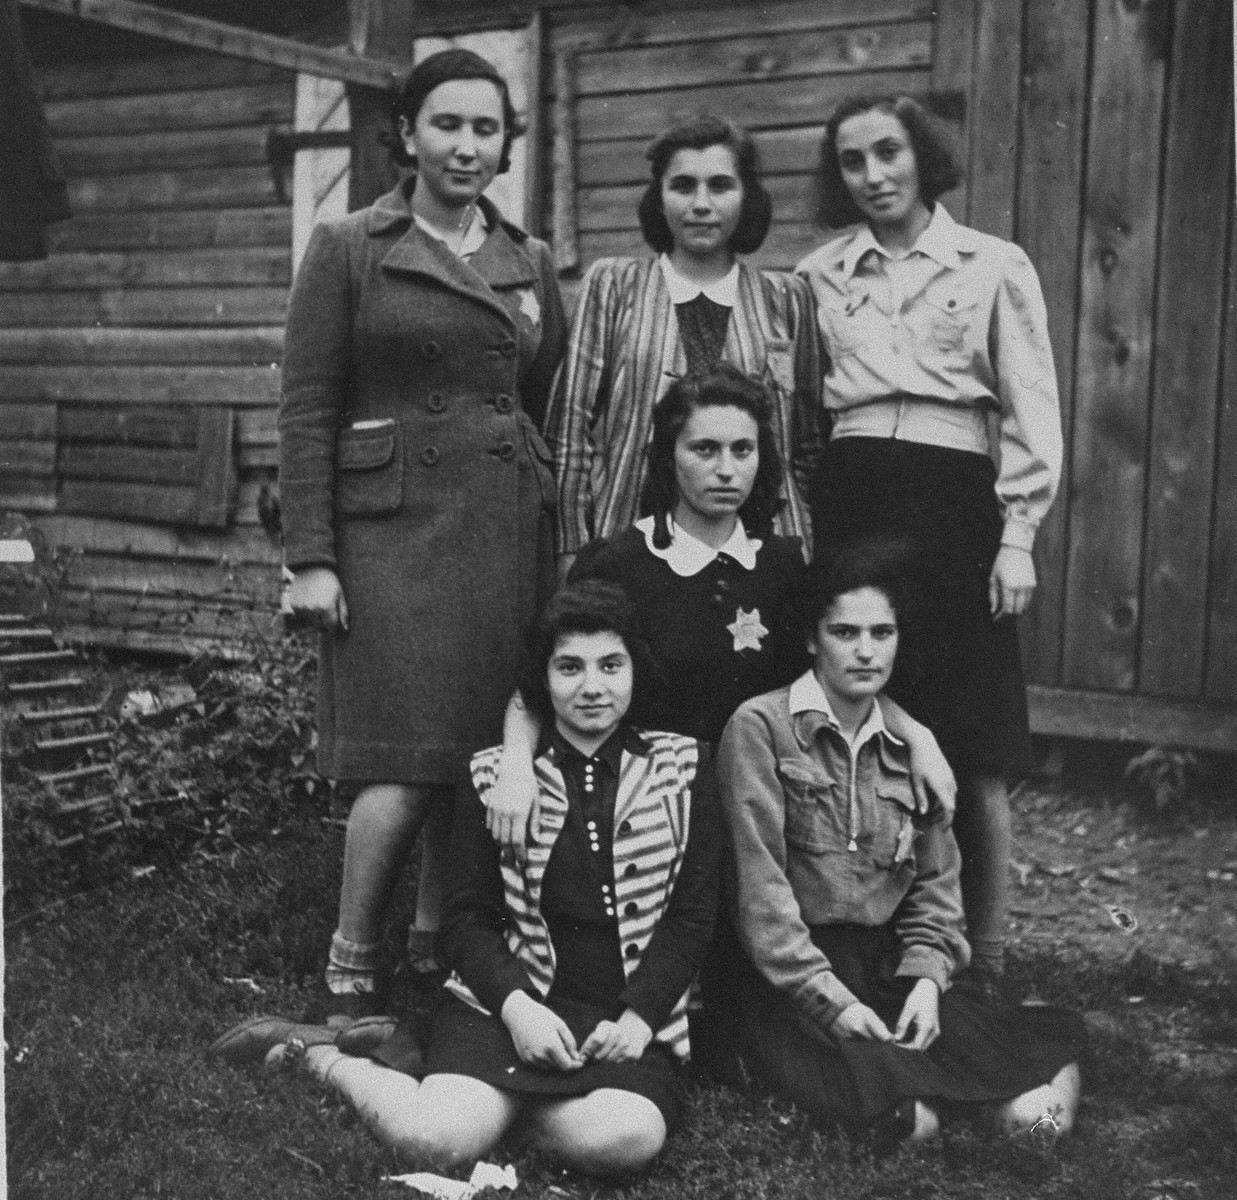 Group portrait of six young women in the Kovno ghetto who are members of the Irgun Brit Zion Zionist youth movement.  Pictured in the back row (left to right) are:  Bela Gurewitz (now Rosenberg), Tania (Yonina) Zaks,  Doli Simon; in the middle, Nechama Boruchson (now Kaufman); front row, left: Lala Finkelstein; right, Rosa Simon (now Shoshana Axelrad).